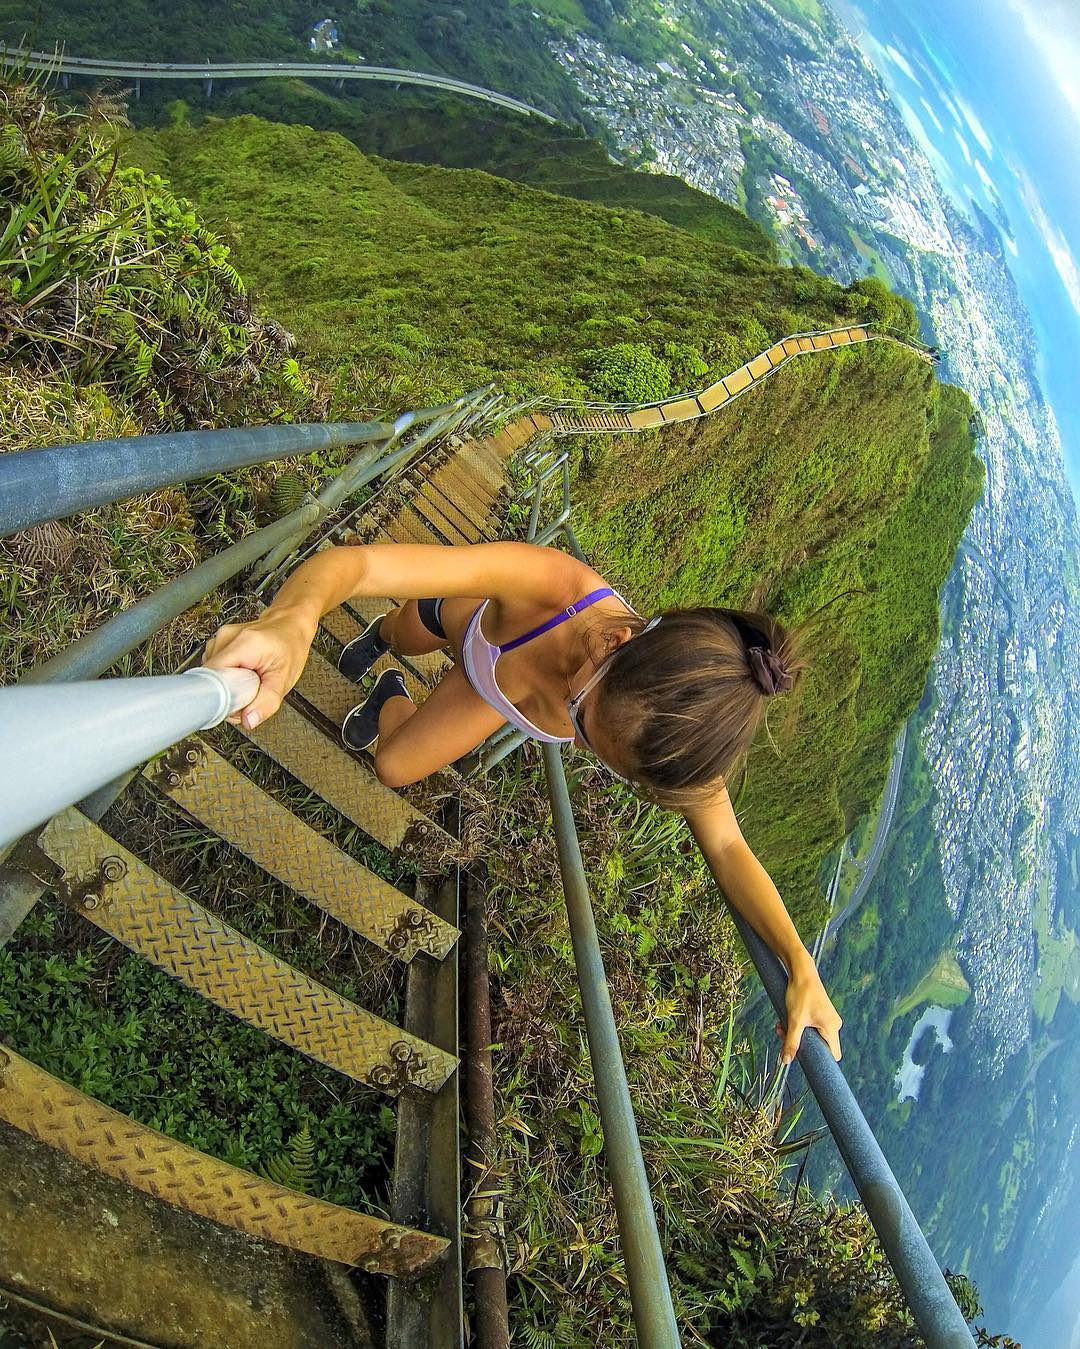 Location: Stairway to Heaven. Shot with GoPro HERO4 and GoPole Reach. Photo: @cole.adrian #gopro #hero4 #gopole #gopolereach #hawaii #hiking